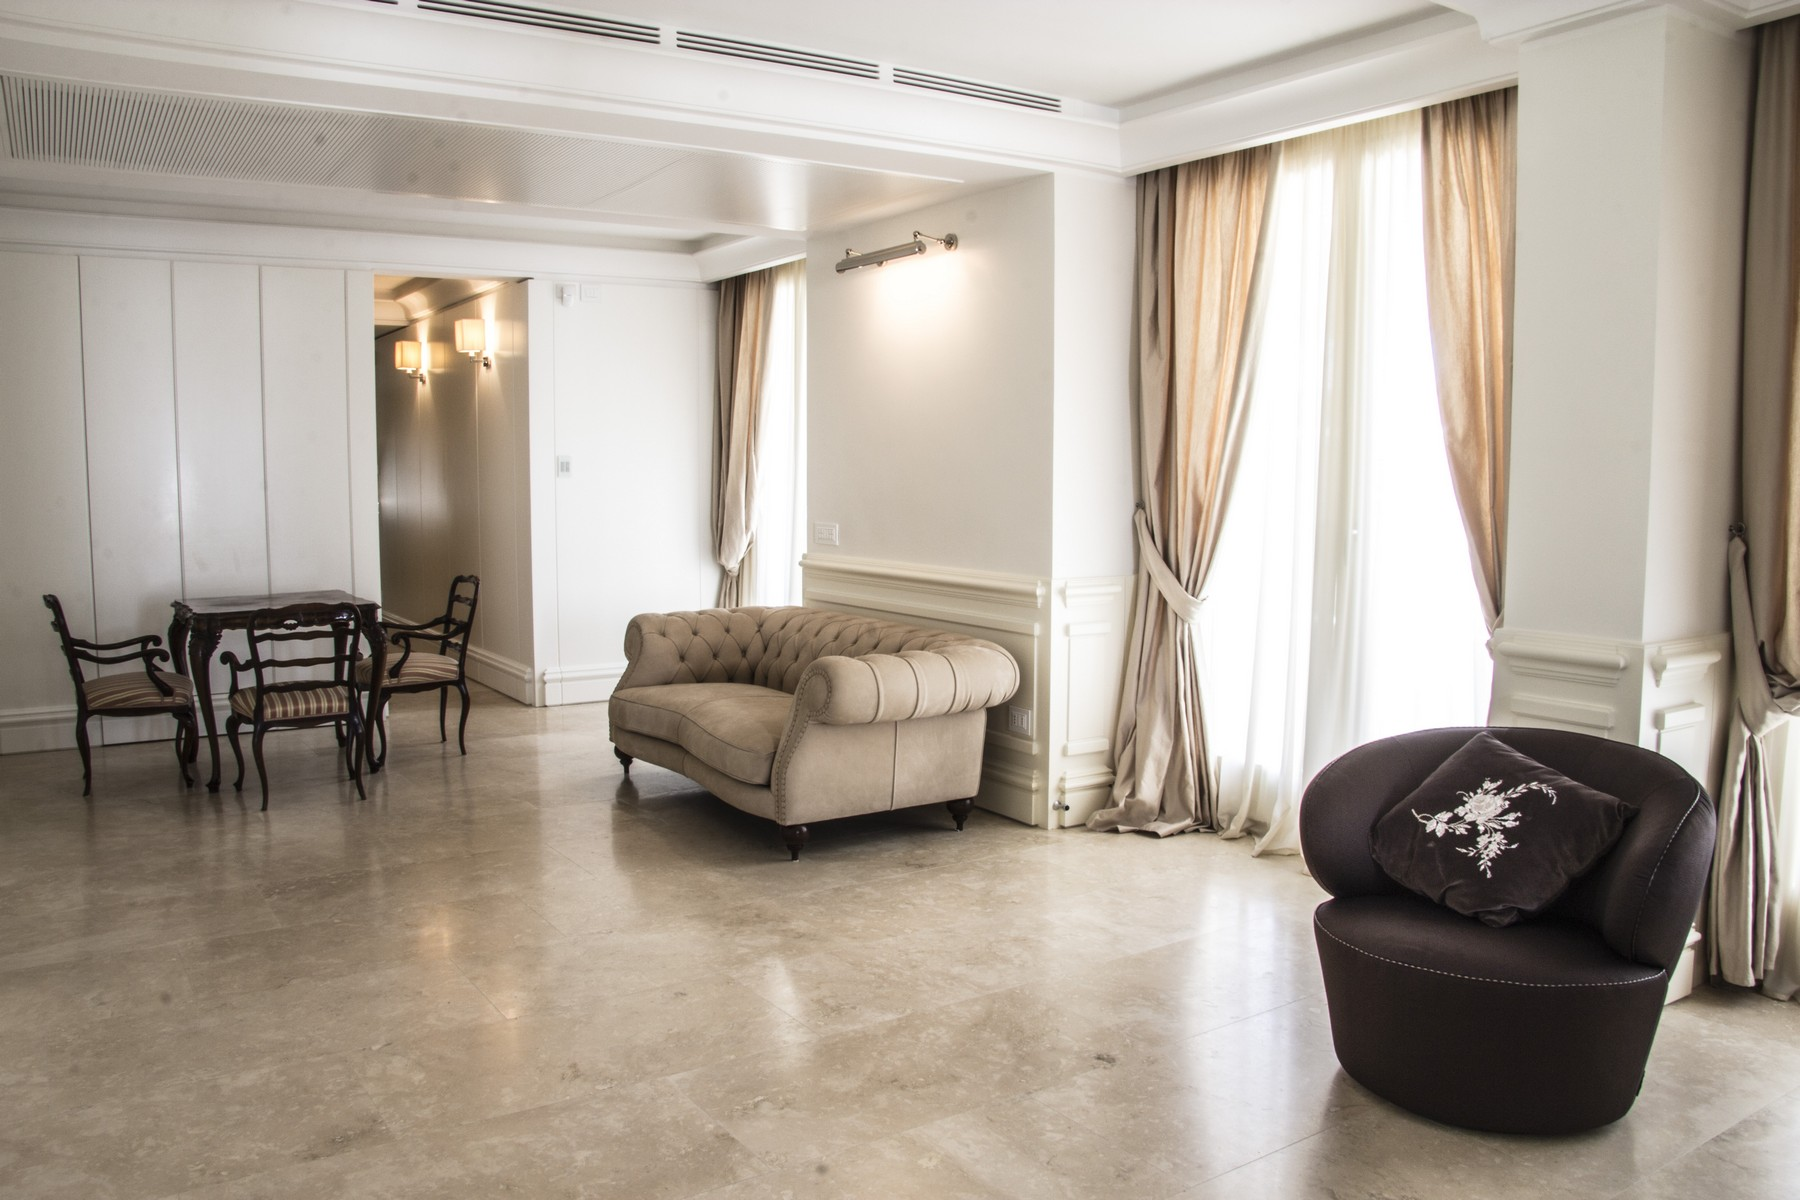 Additional photo for property listing at Stunning Penthouse in Rome Parioli  Rome, Rome 00197 Italy